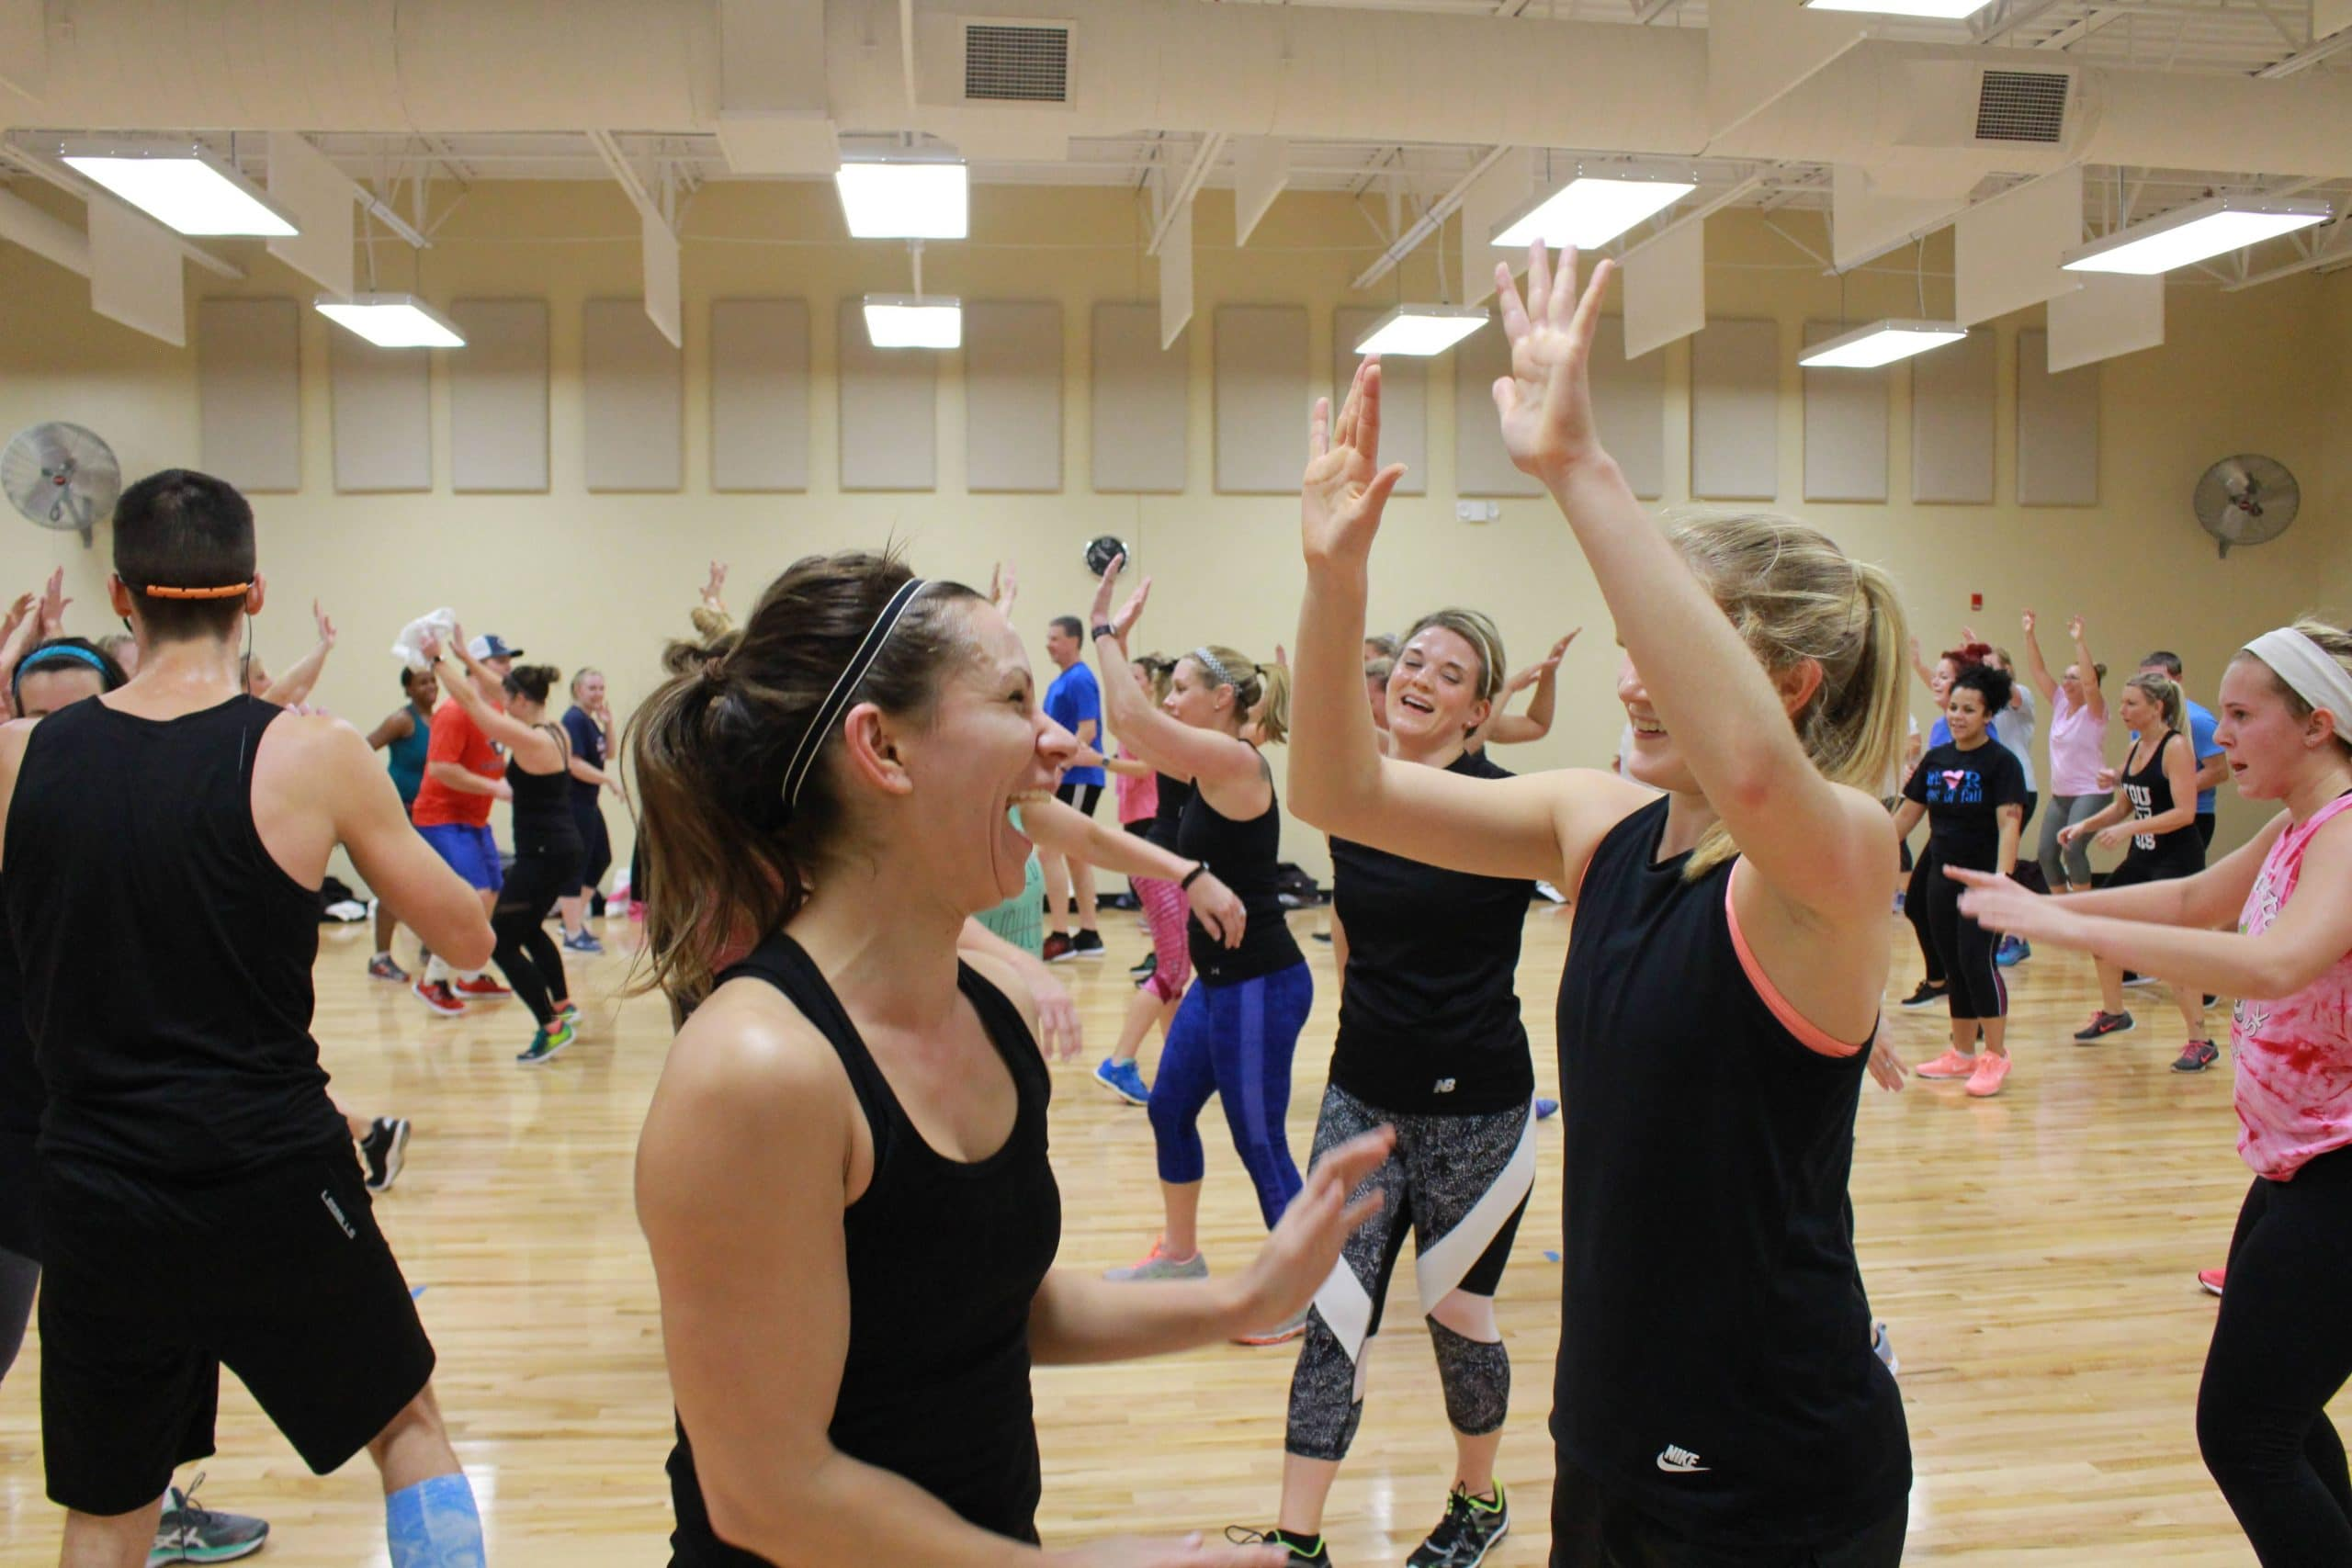 Get your high five at the Y